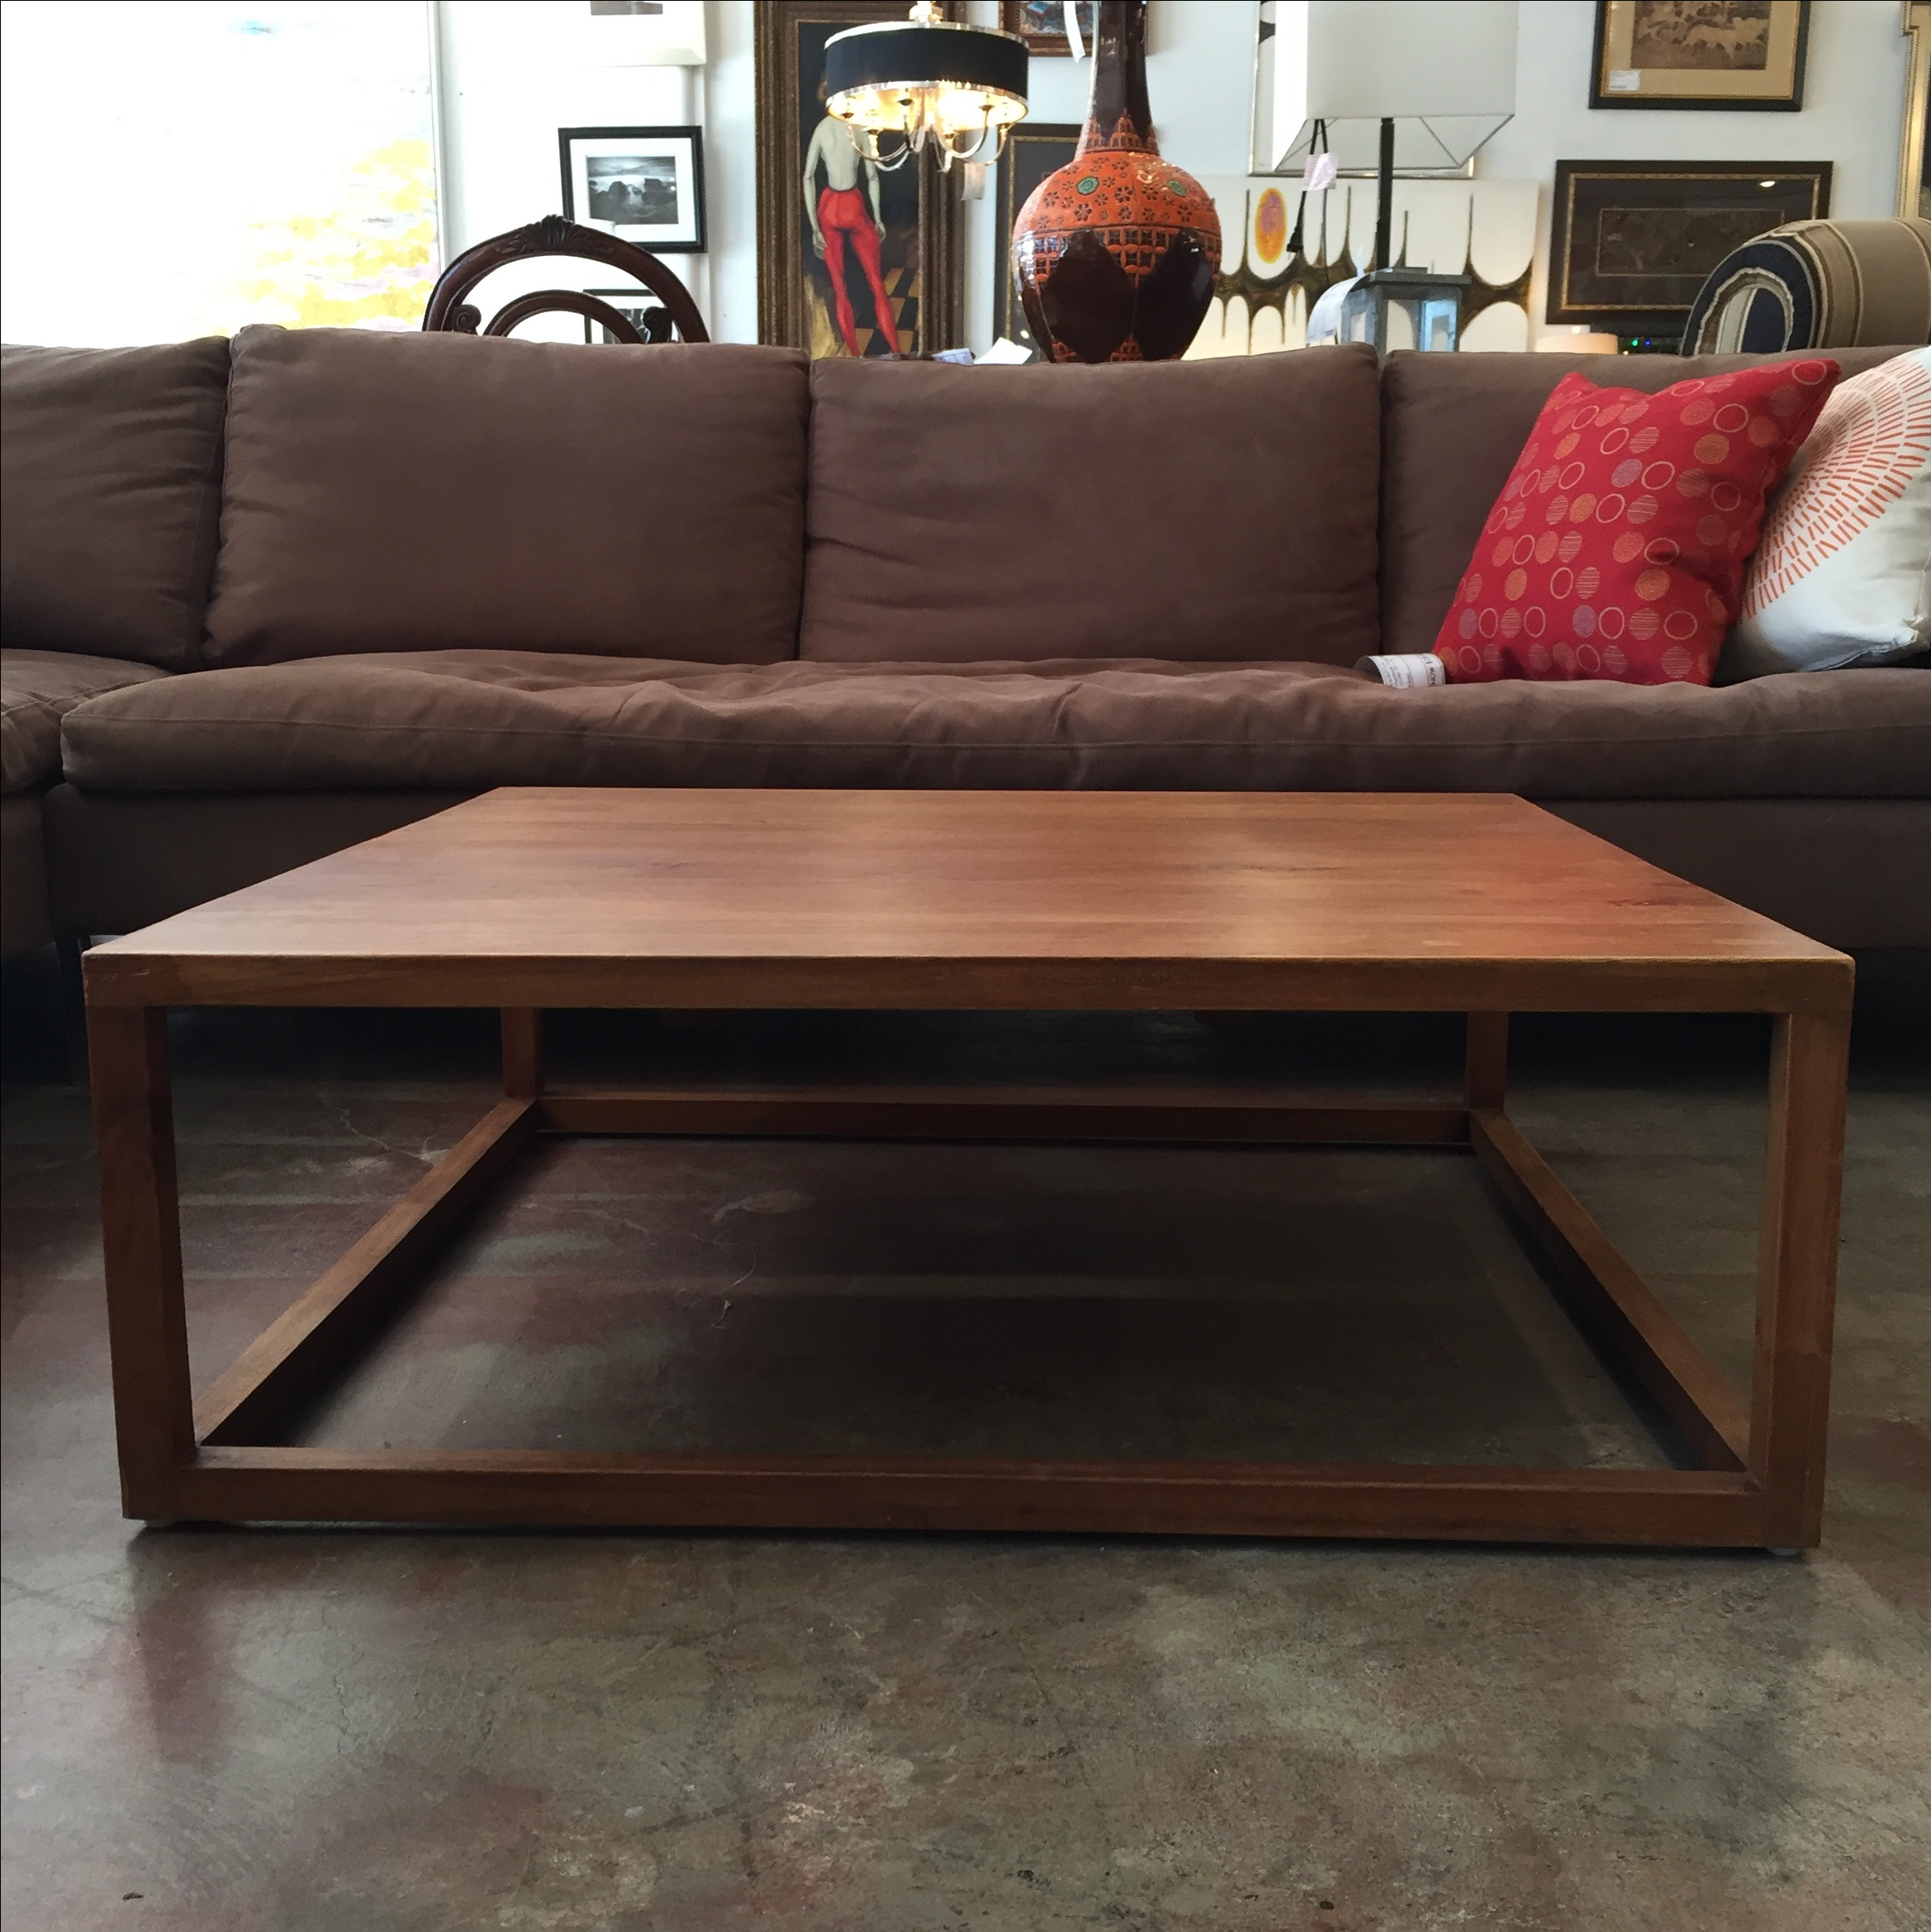 Furniture Consignment Los Angeles Modern Wood Coffee Table | Chairish